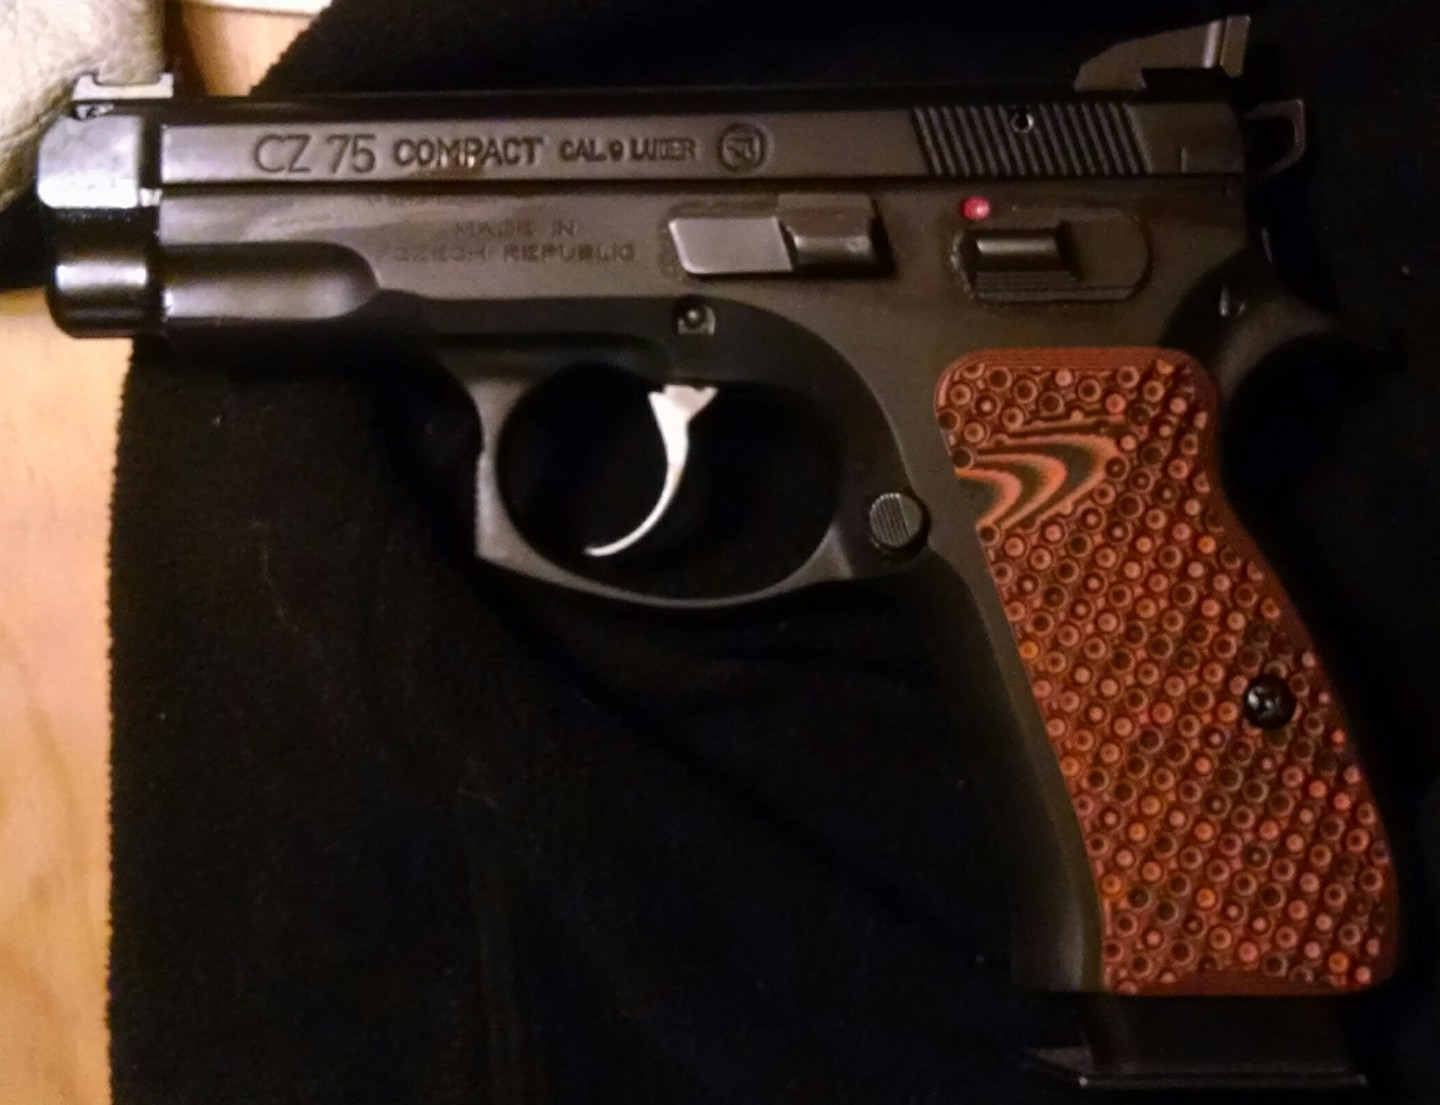 Lok grips palm swell or vz palm swell??? - CZ - Brian Enos's Forums